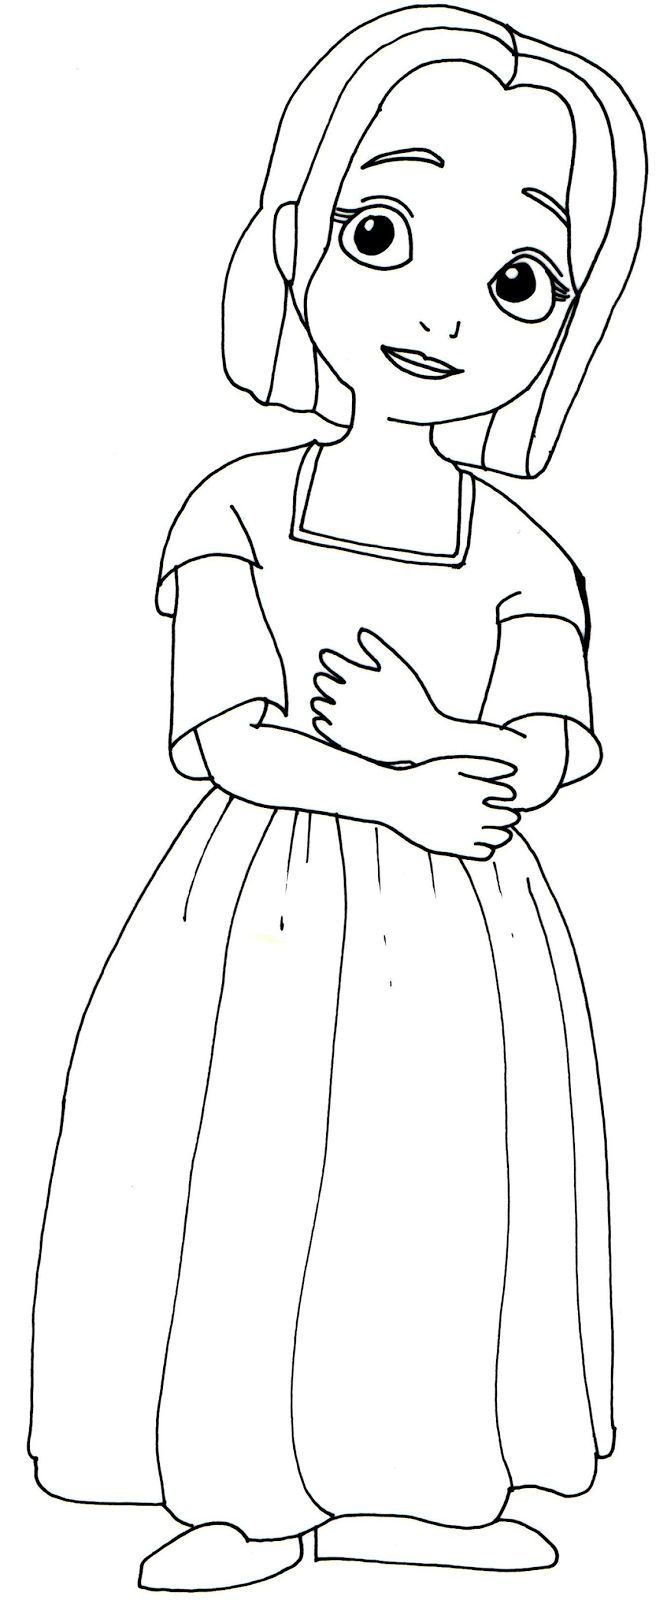 Sofia The First Coloring Pages: Jade | sofia | Pinterest | Jade and ...